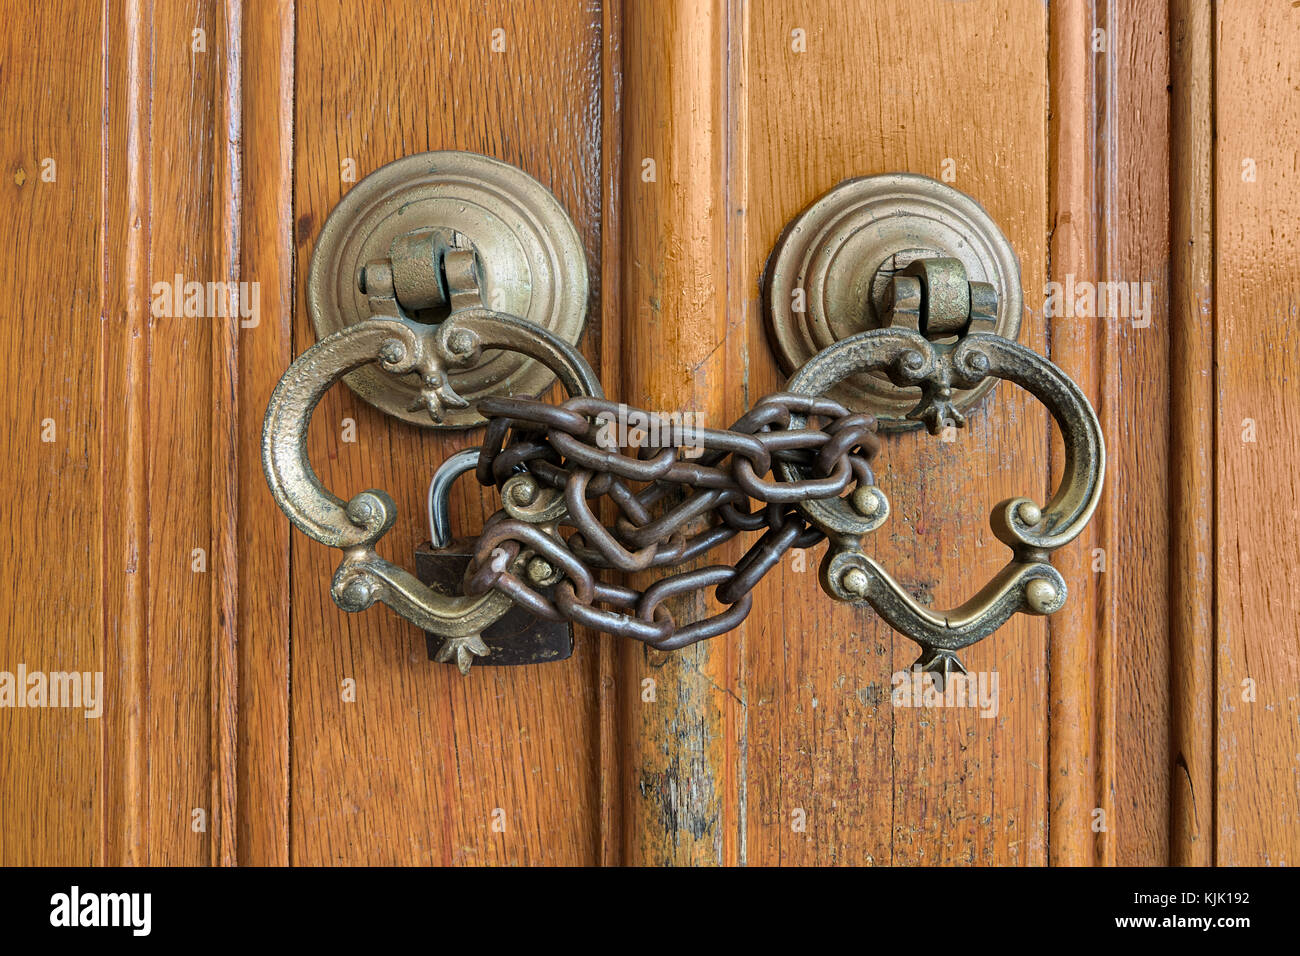 Closeup of two antique copper ornate door knockers over an aged wooden ornate door closed with rusted chain and - Stock Image